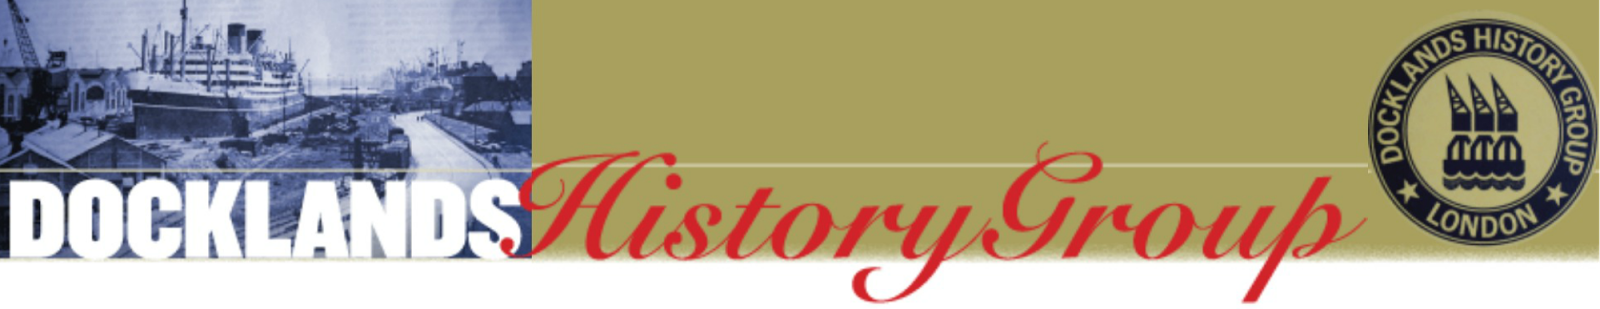 The London Docklands History Group